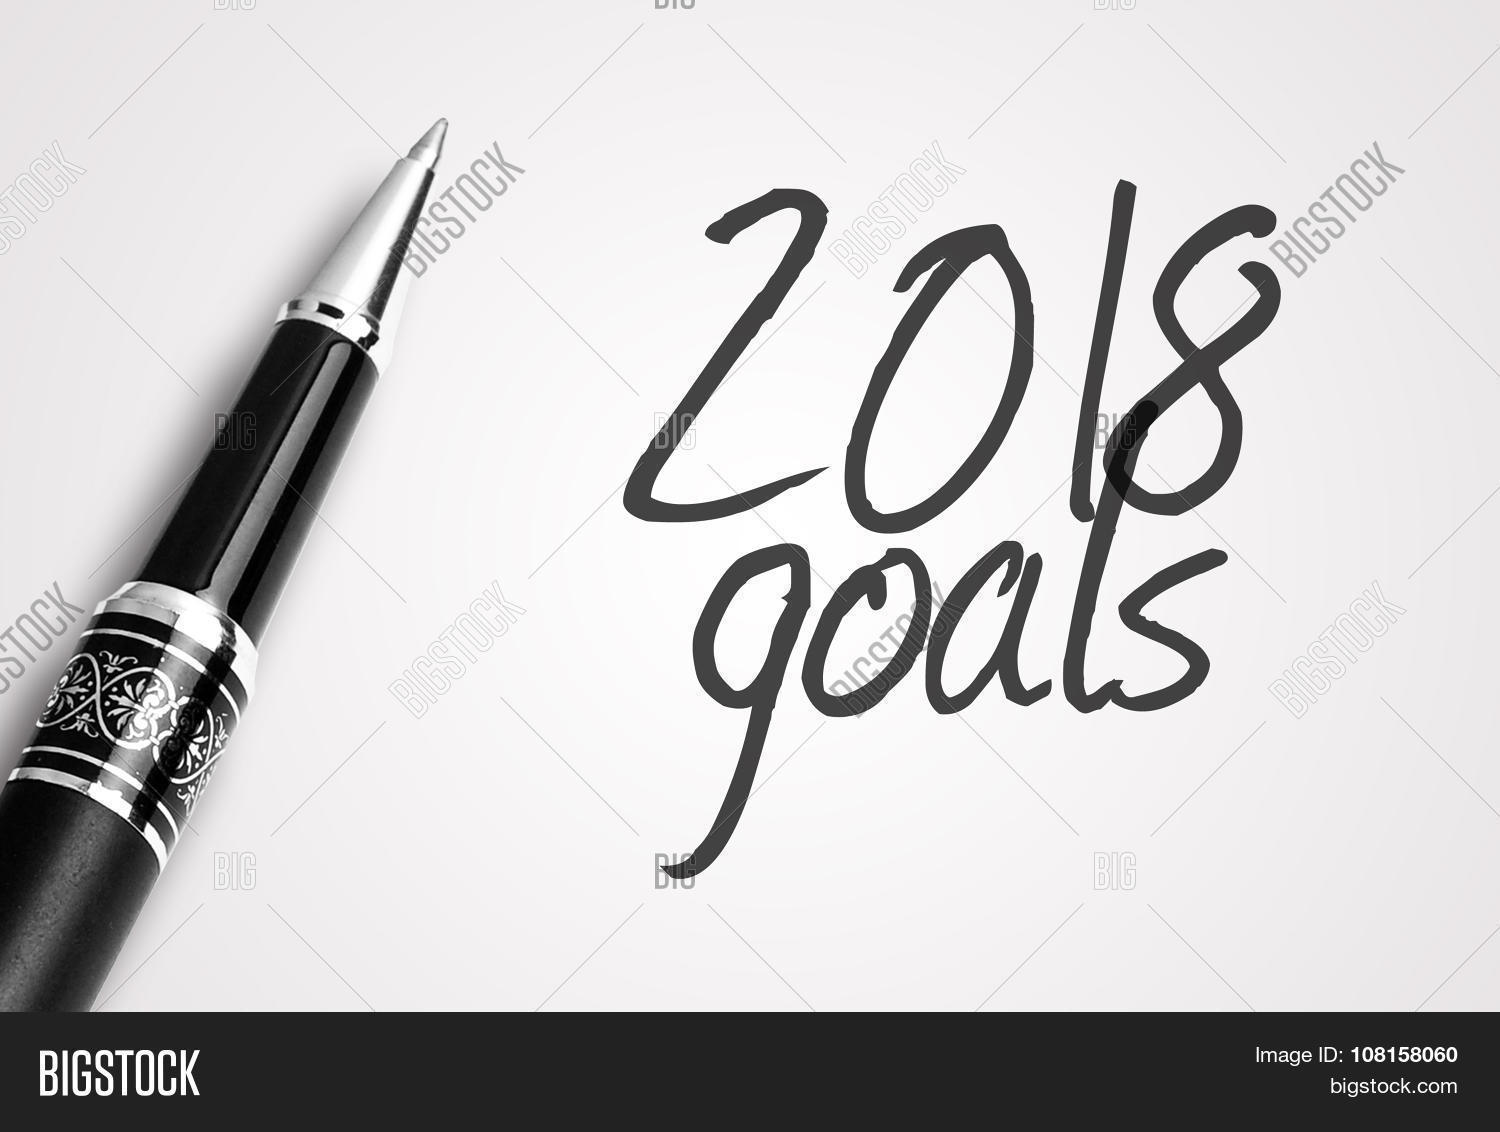 Image result for 2018 goals